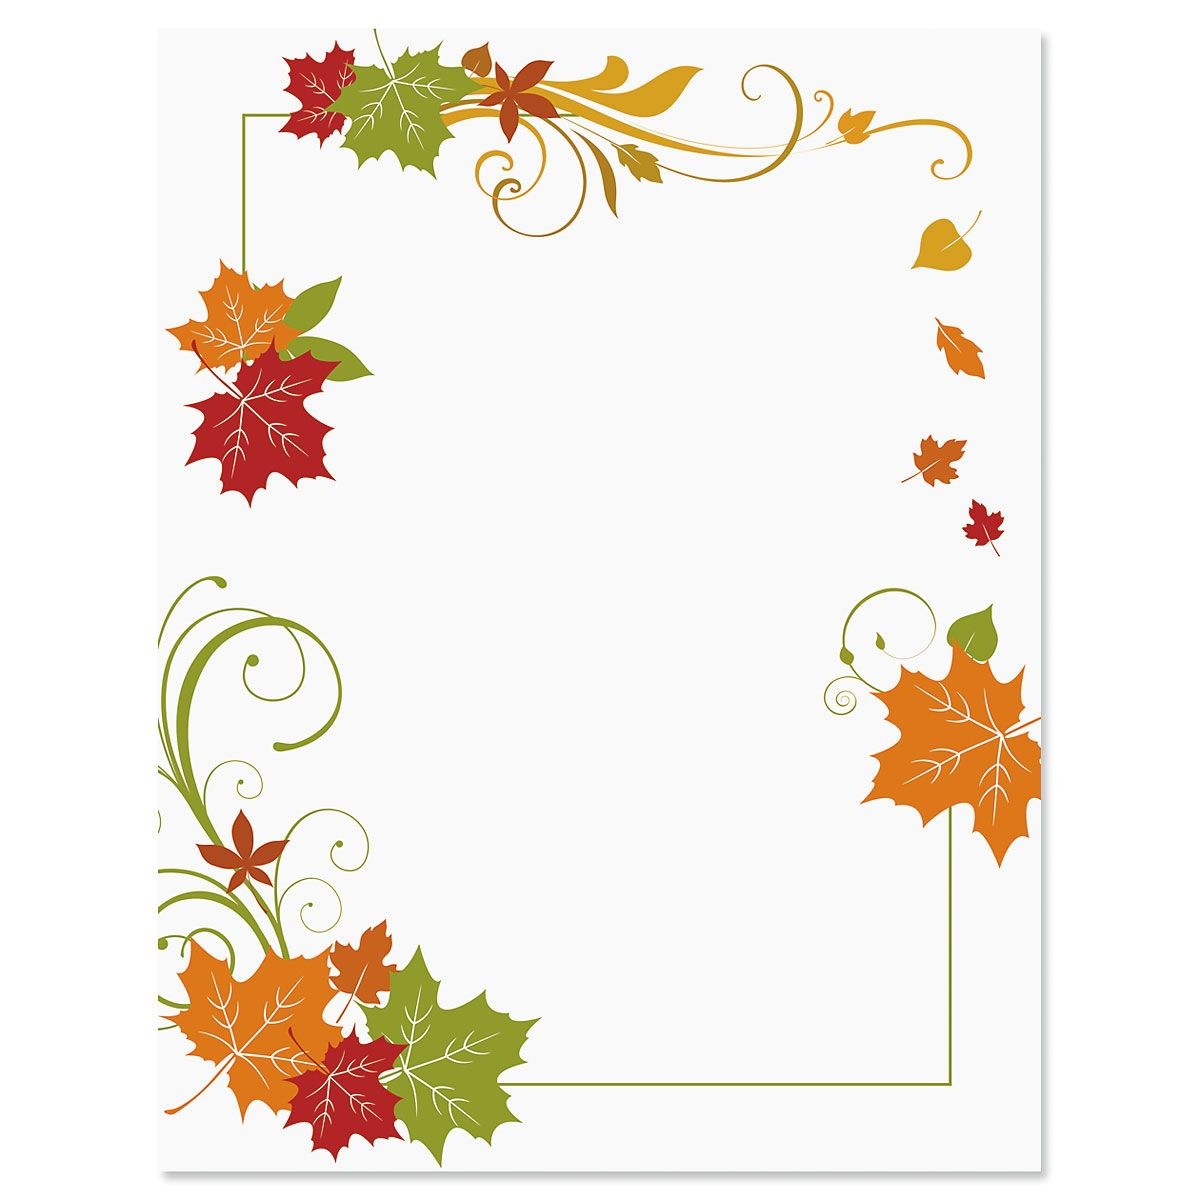 Fall Flourish Frame Halloween Letter Papers